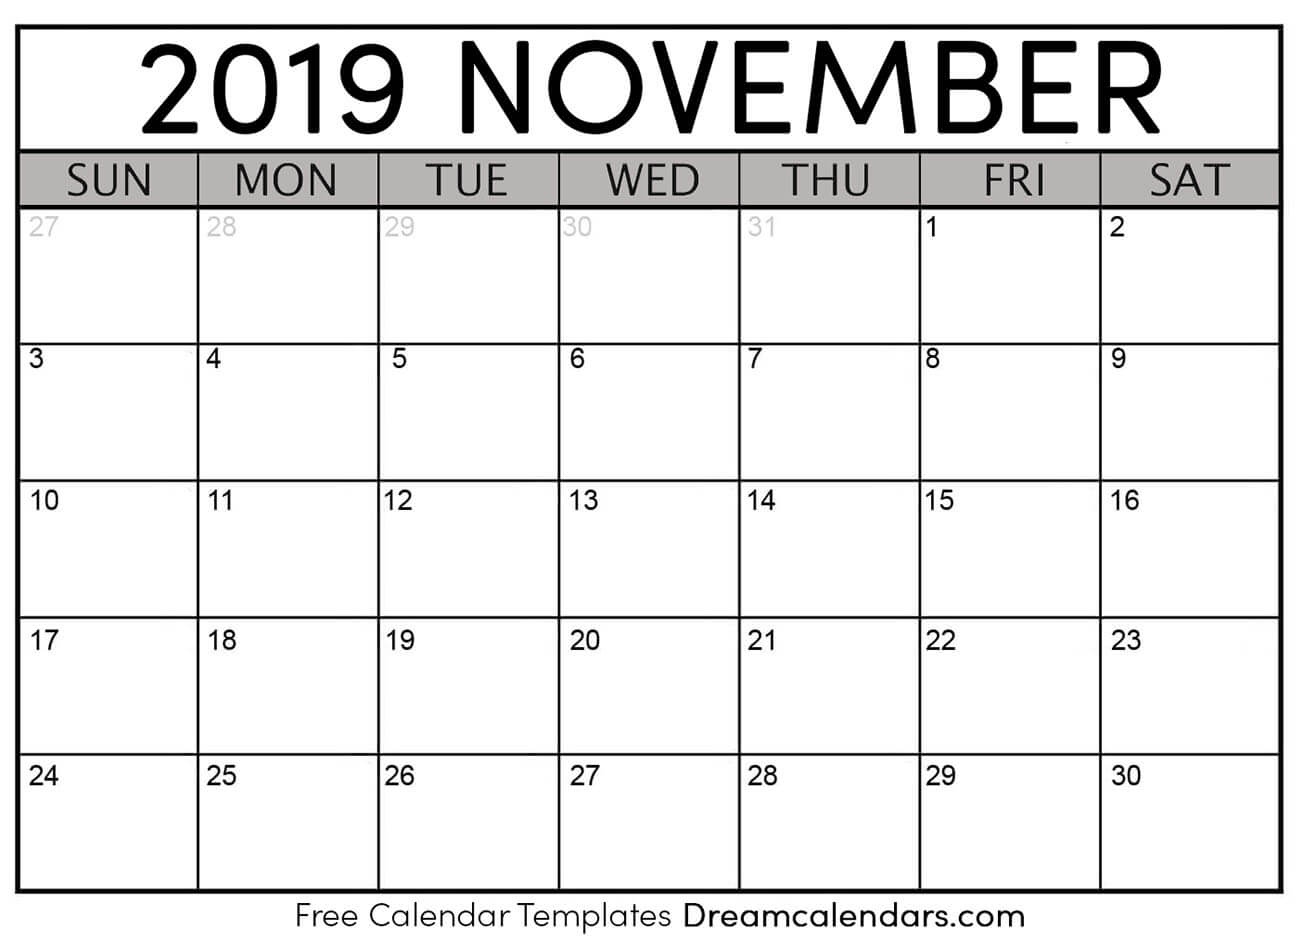 You can budget both your money and your time by making a. November 2019 calendar   free blank printable templates